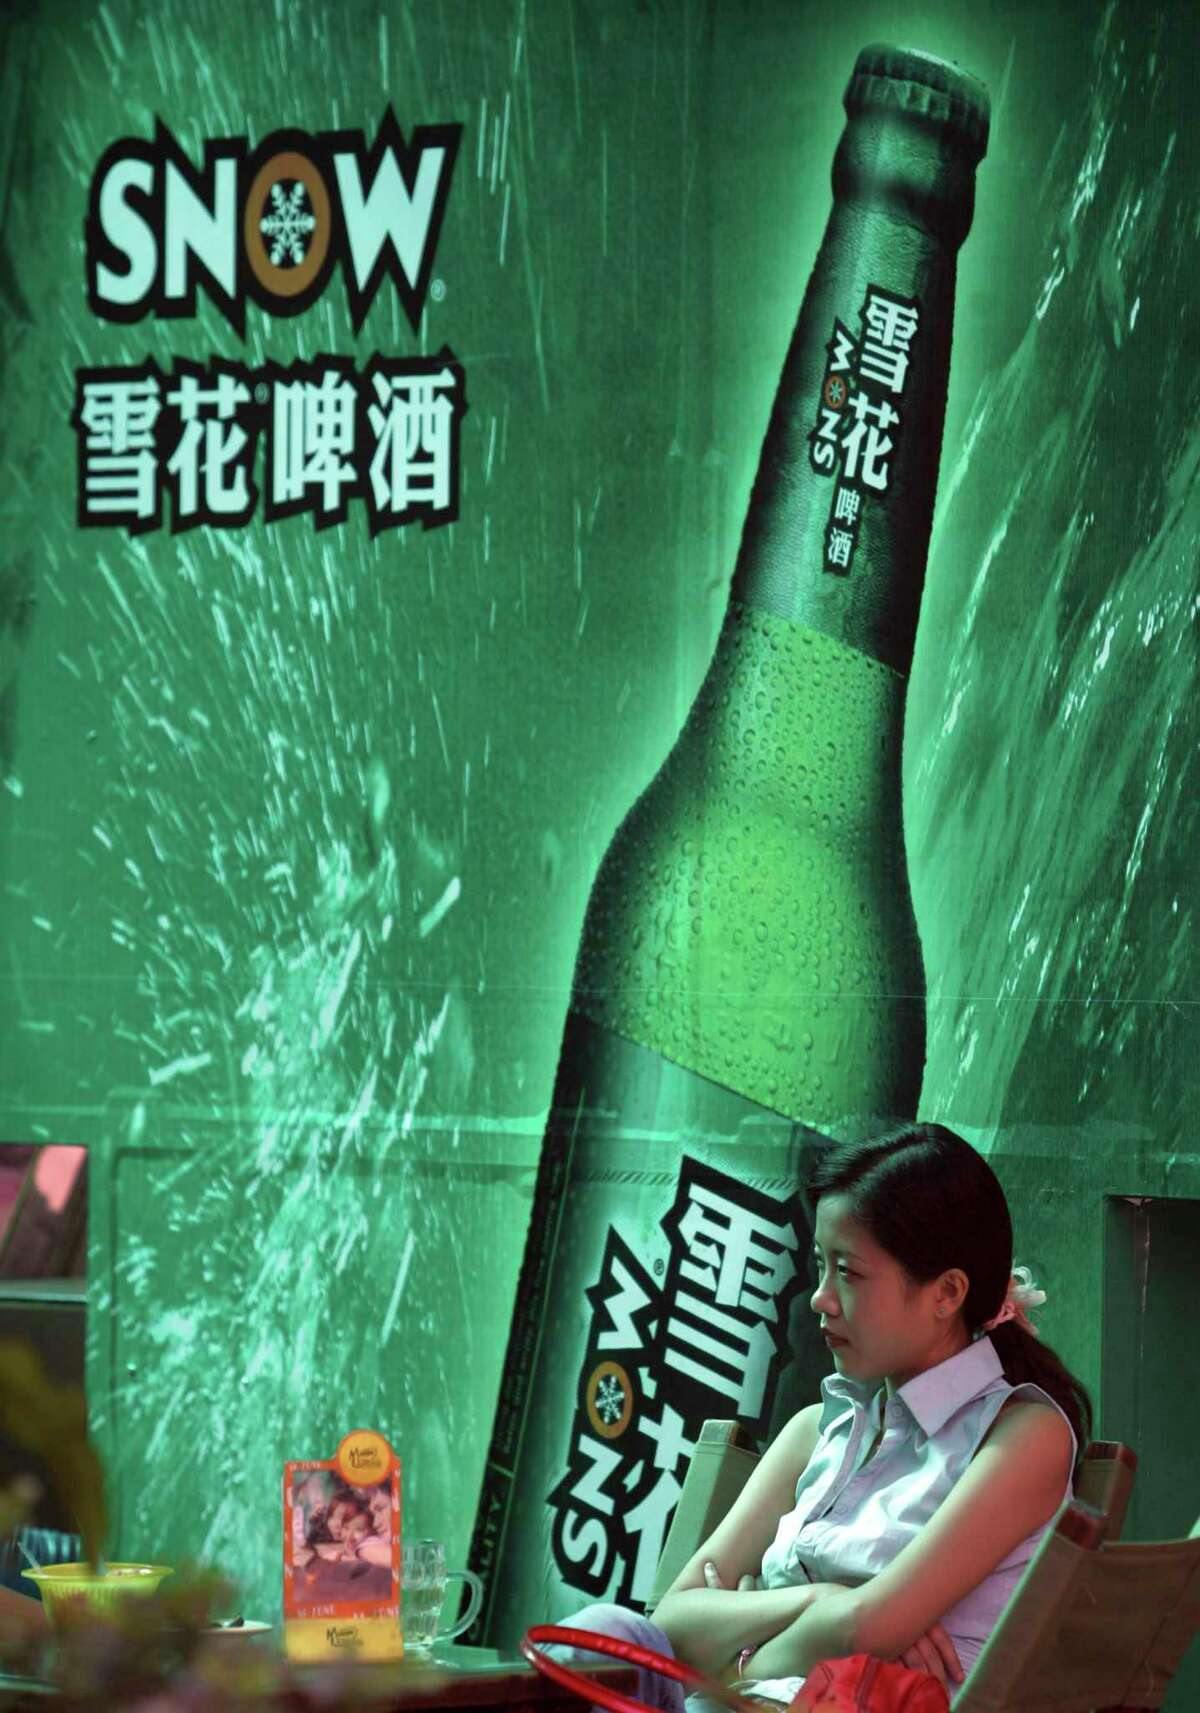 In this Sept. 11, 2006, photo, a woman sits near an advertising poster for Snow Beer in a bar in southwestern China's Chongqing municipality. A potential prize for AB InBev in its bid for SABMiller is a Chinese beer, Snow, that is the world's biggest seller. But any deal will face Chinese regulators who have barred the two brewing giants in the past from cooperating.